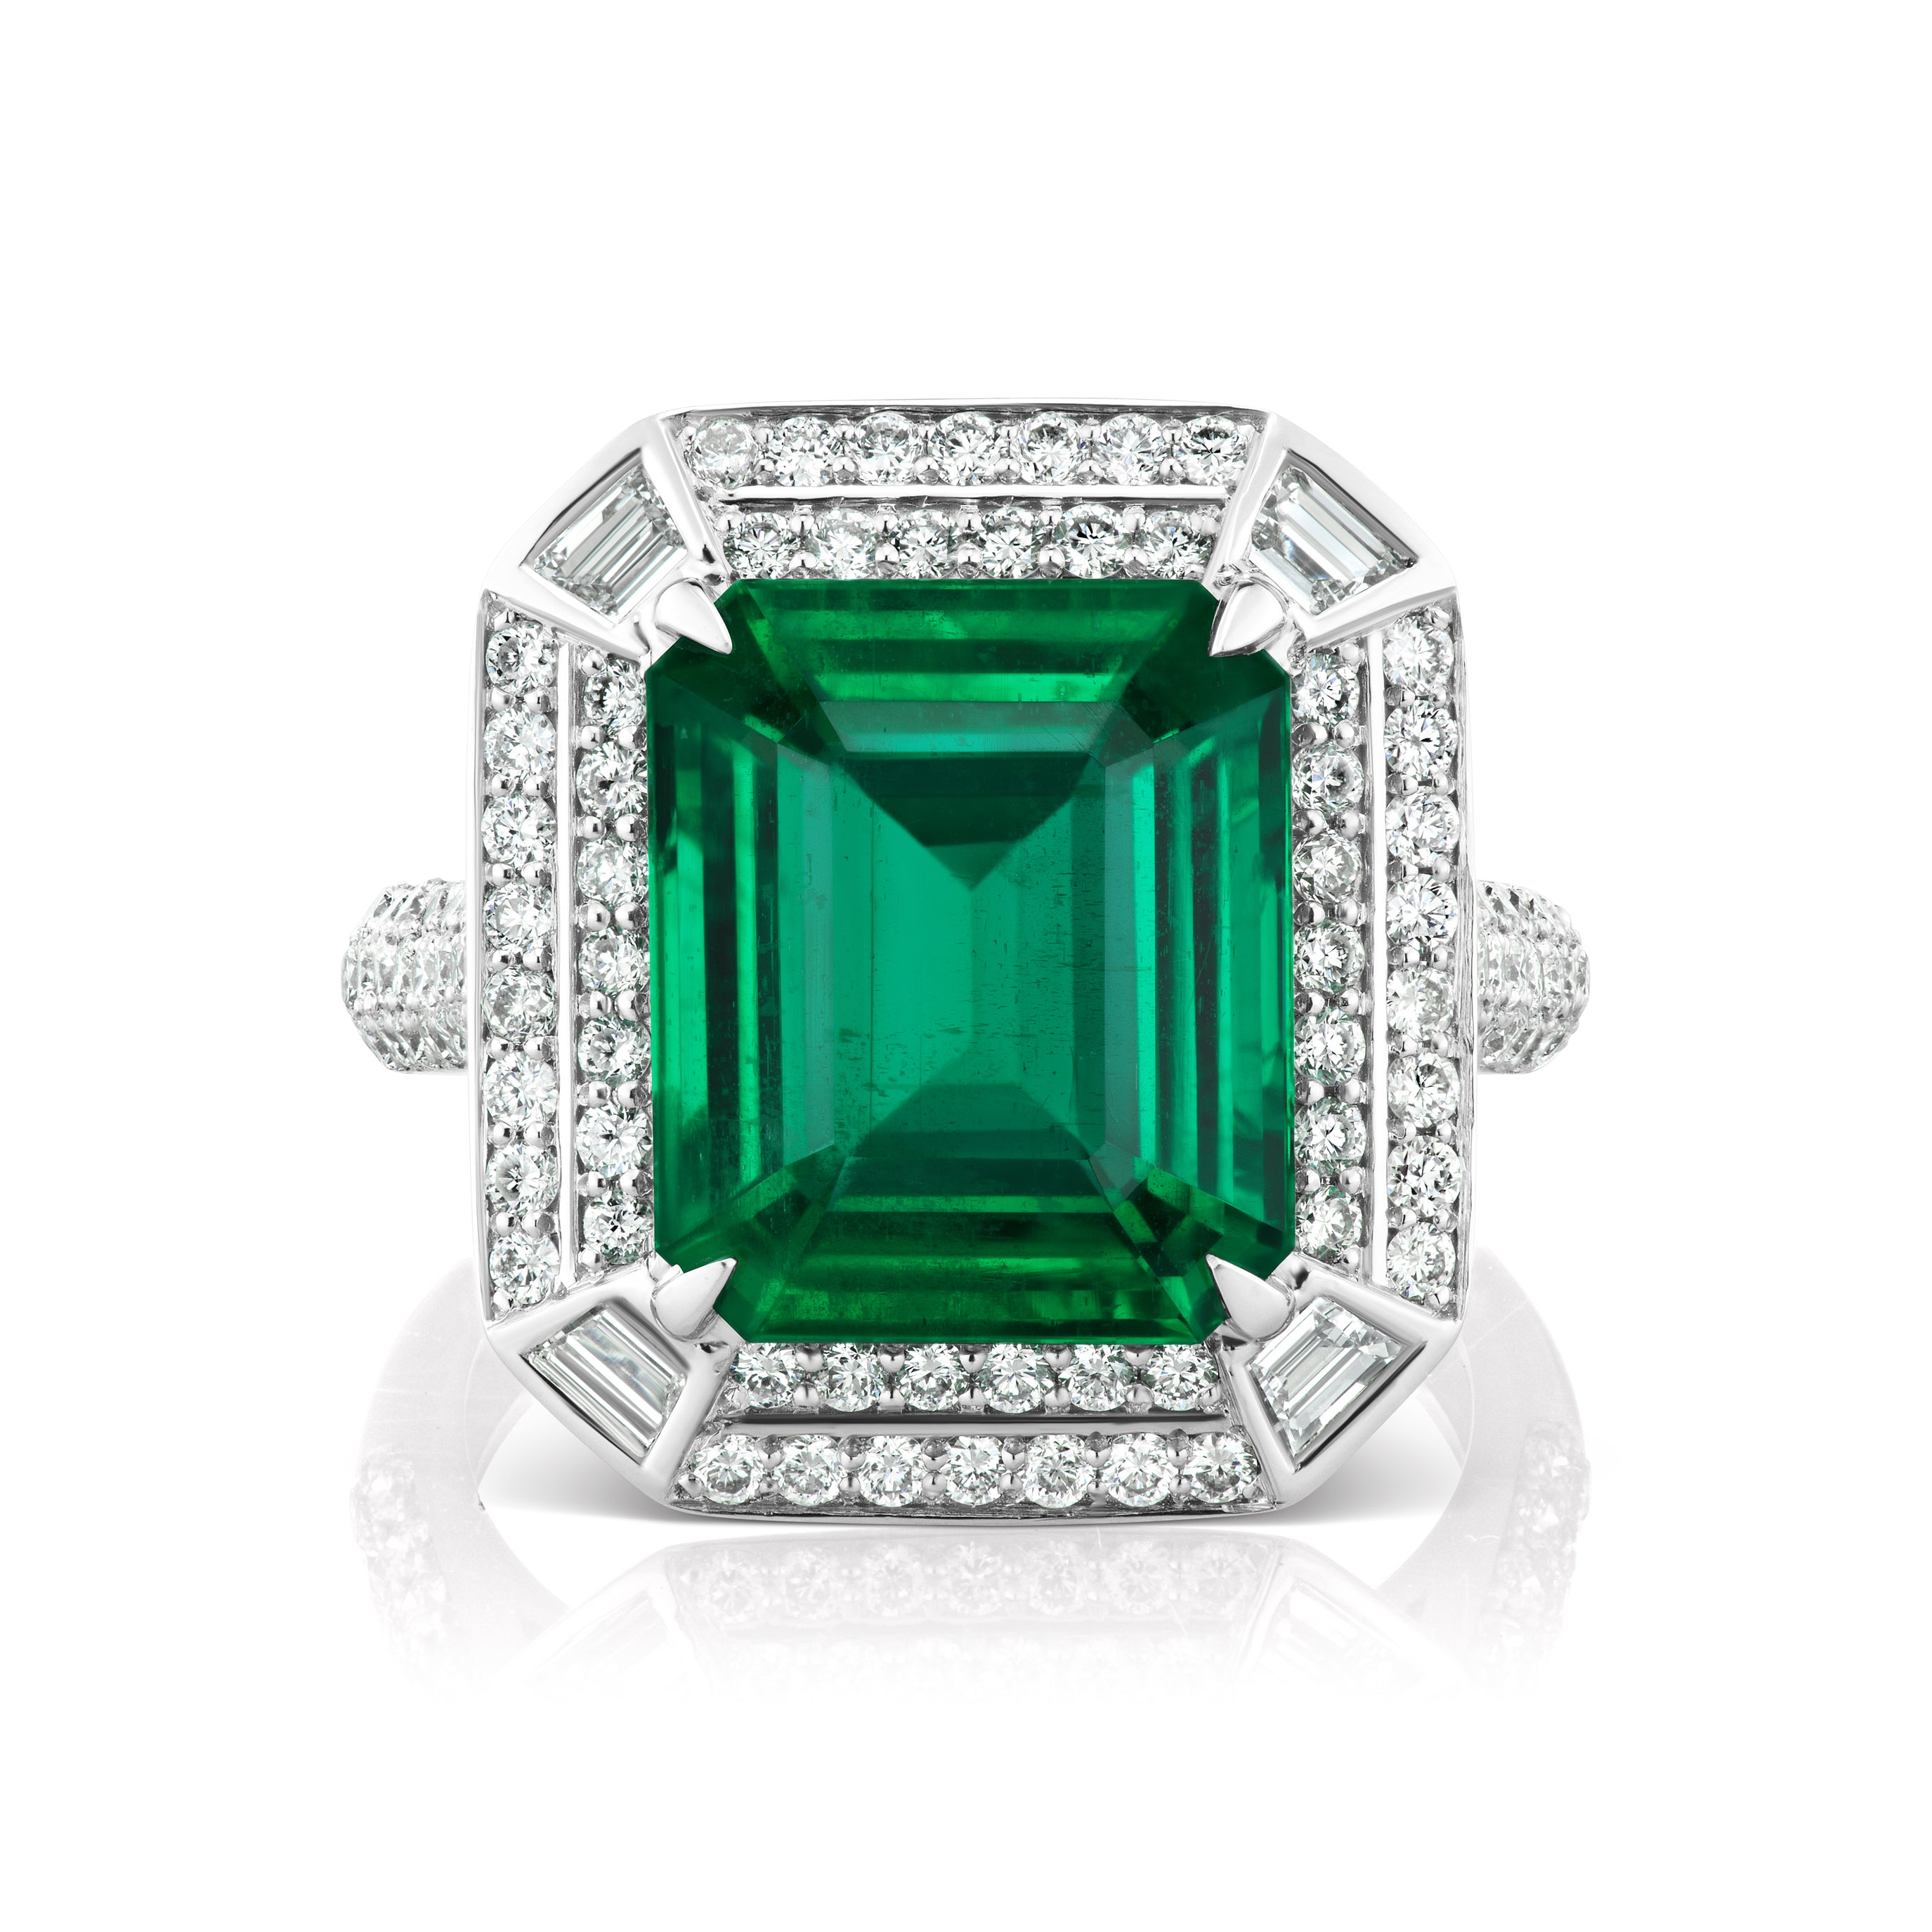 r swk stainless engagement jewelry mens ct emerald ring bling cz cut steel